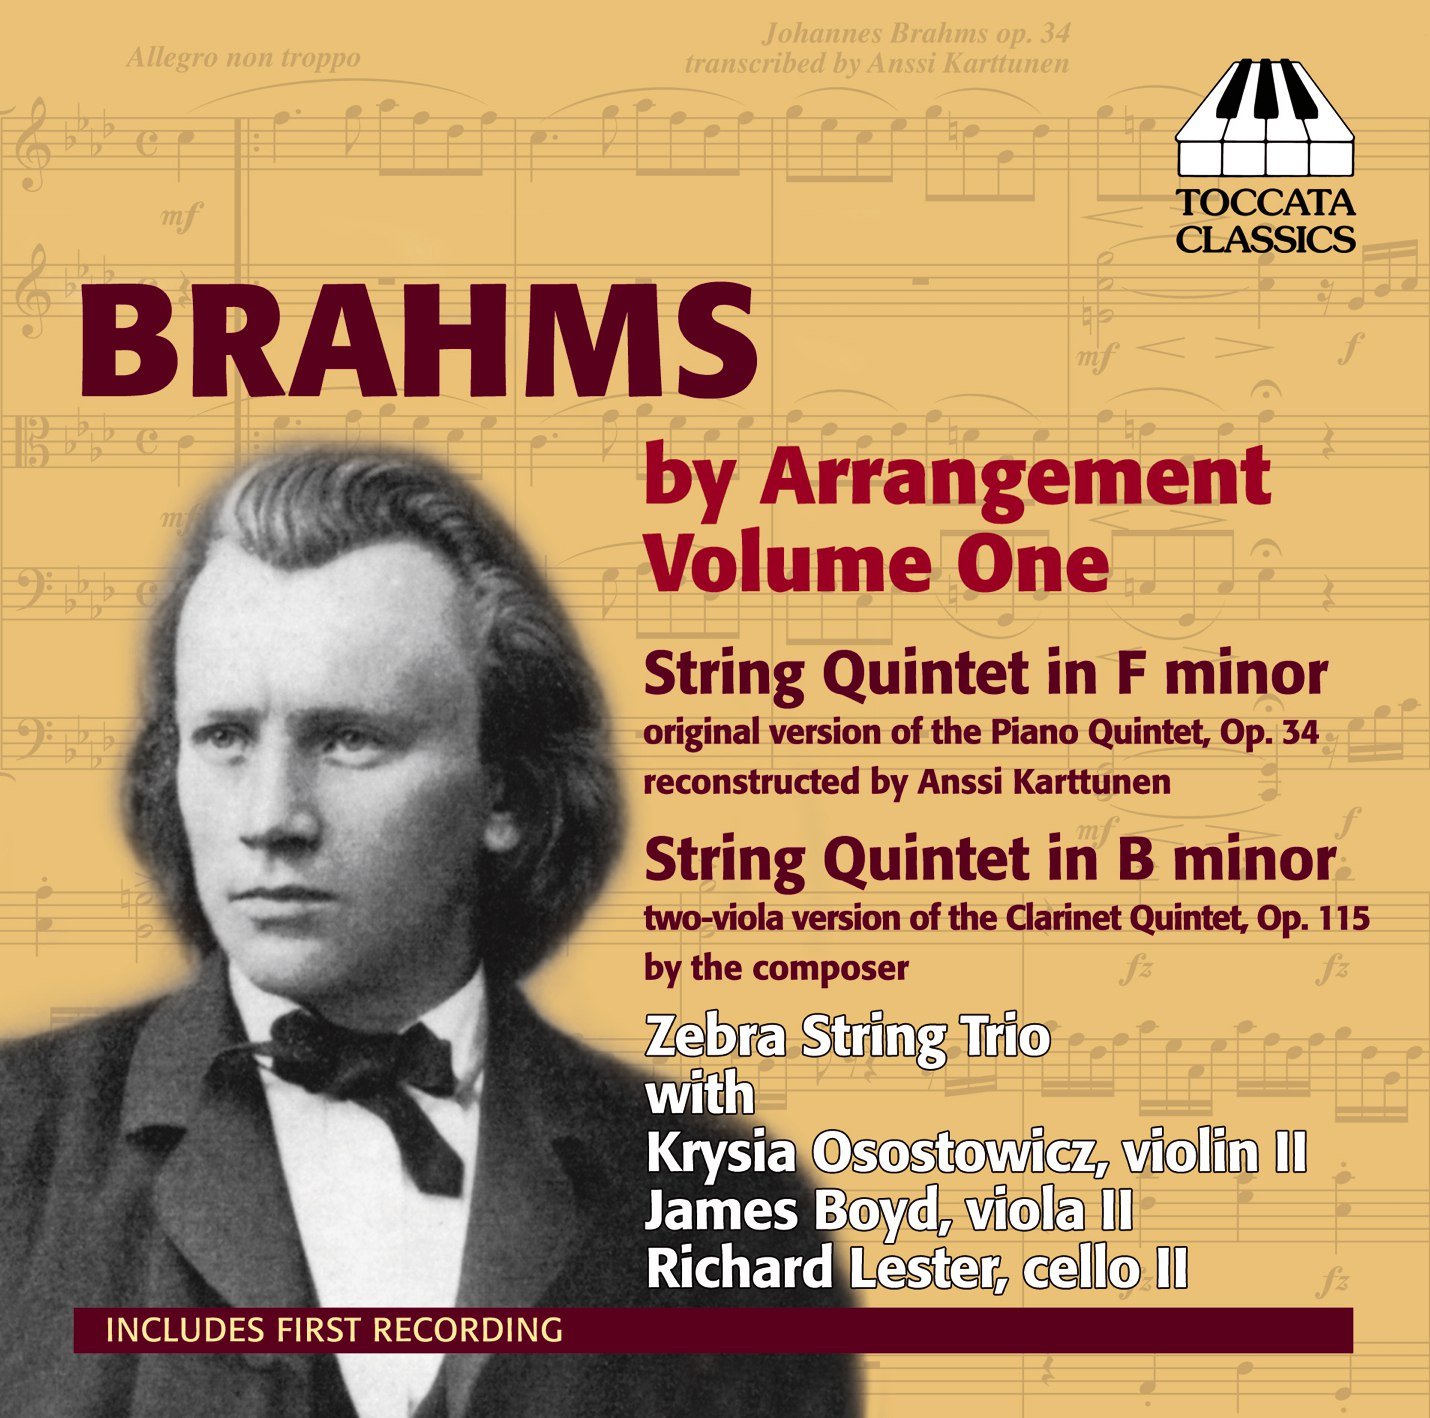 Brahms by Arrangement